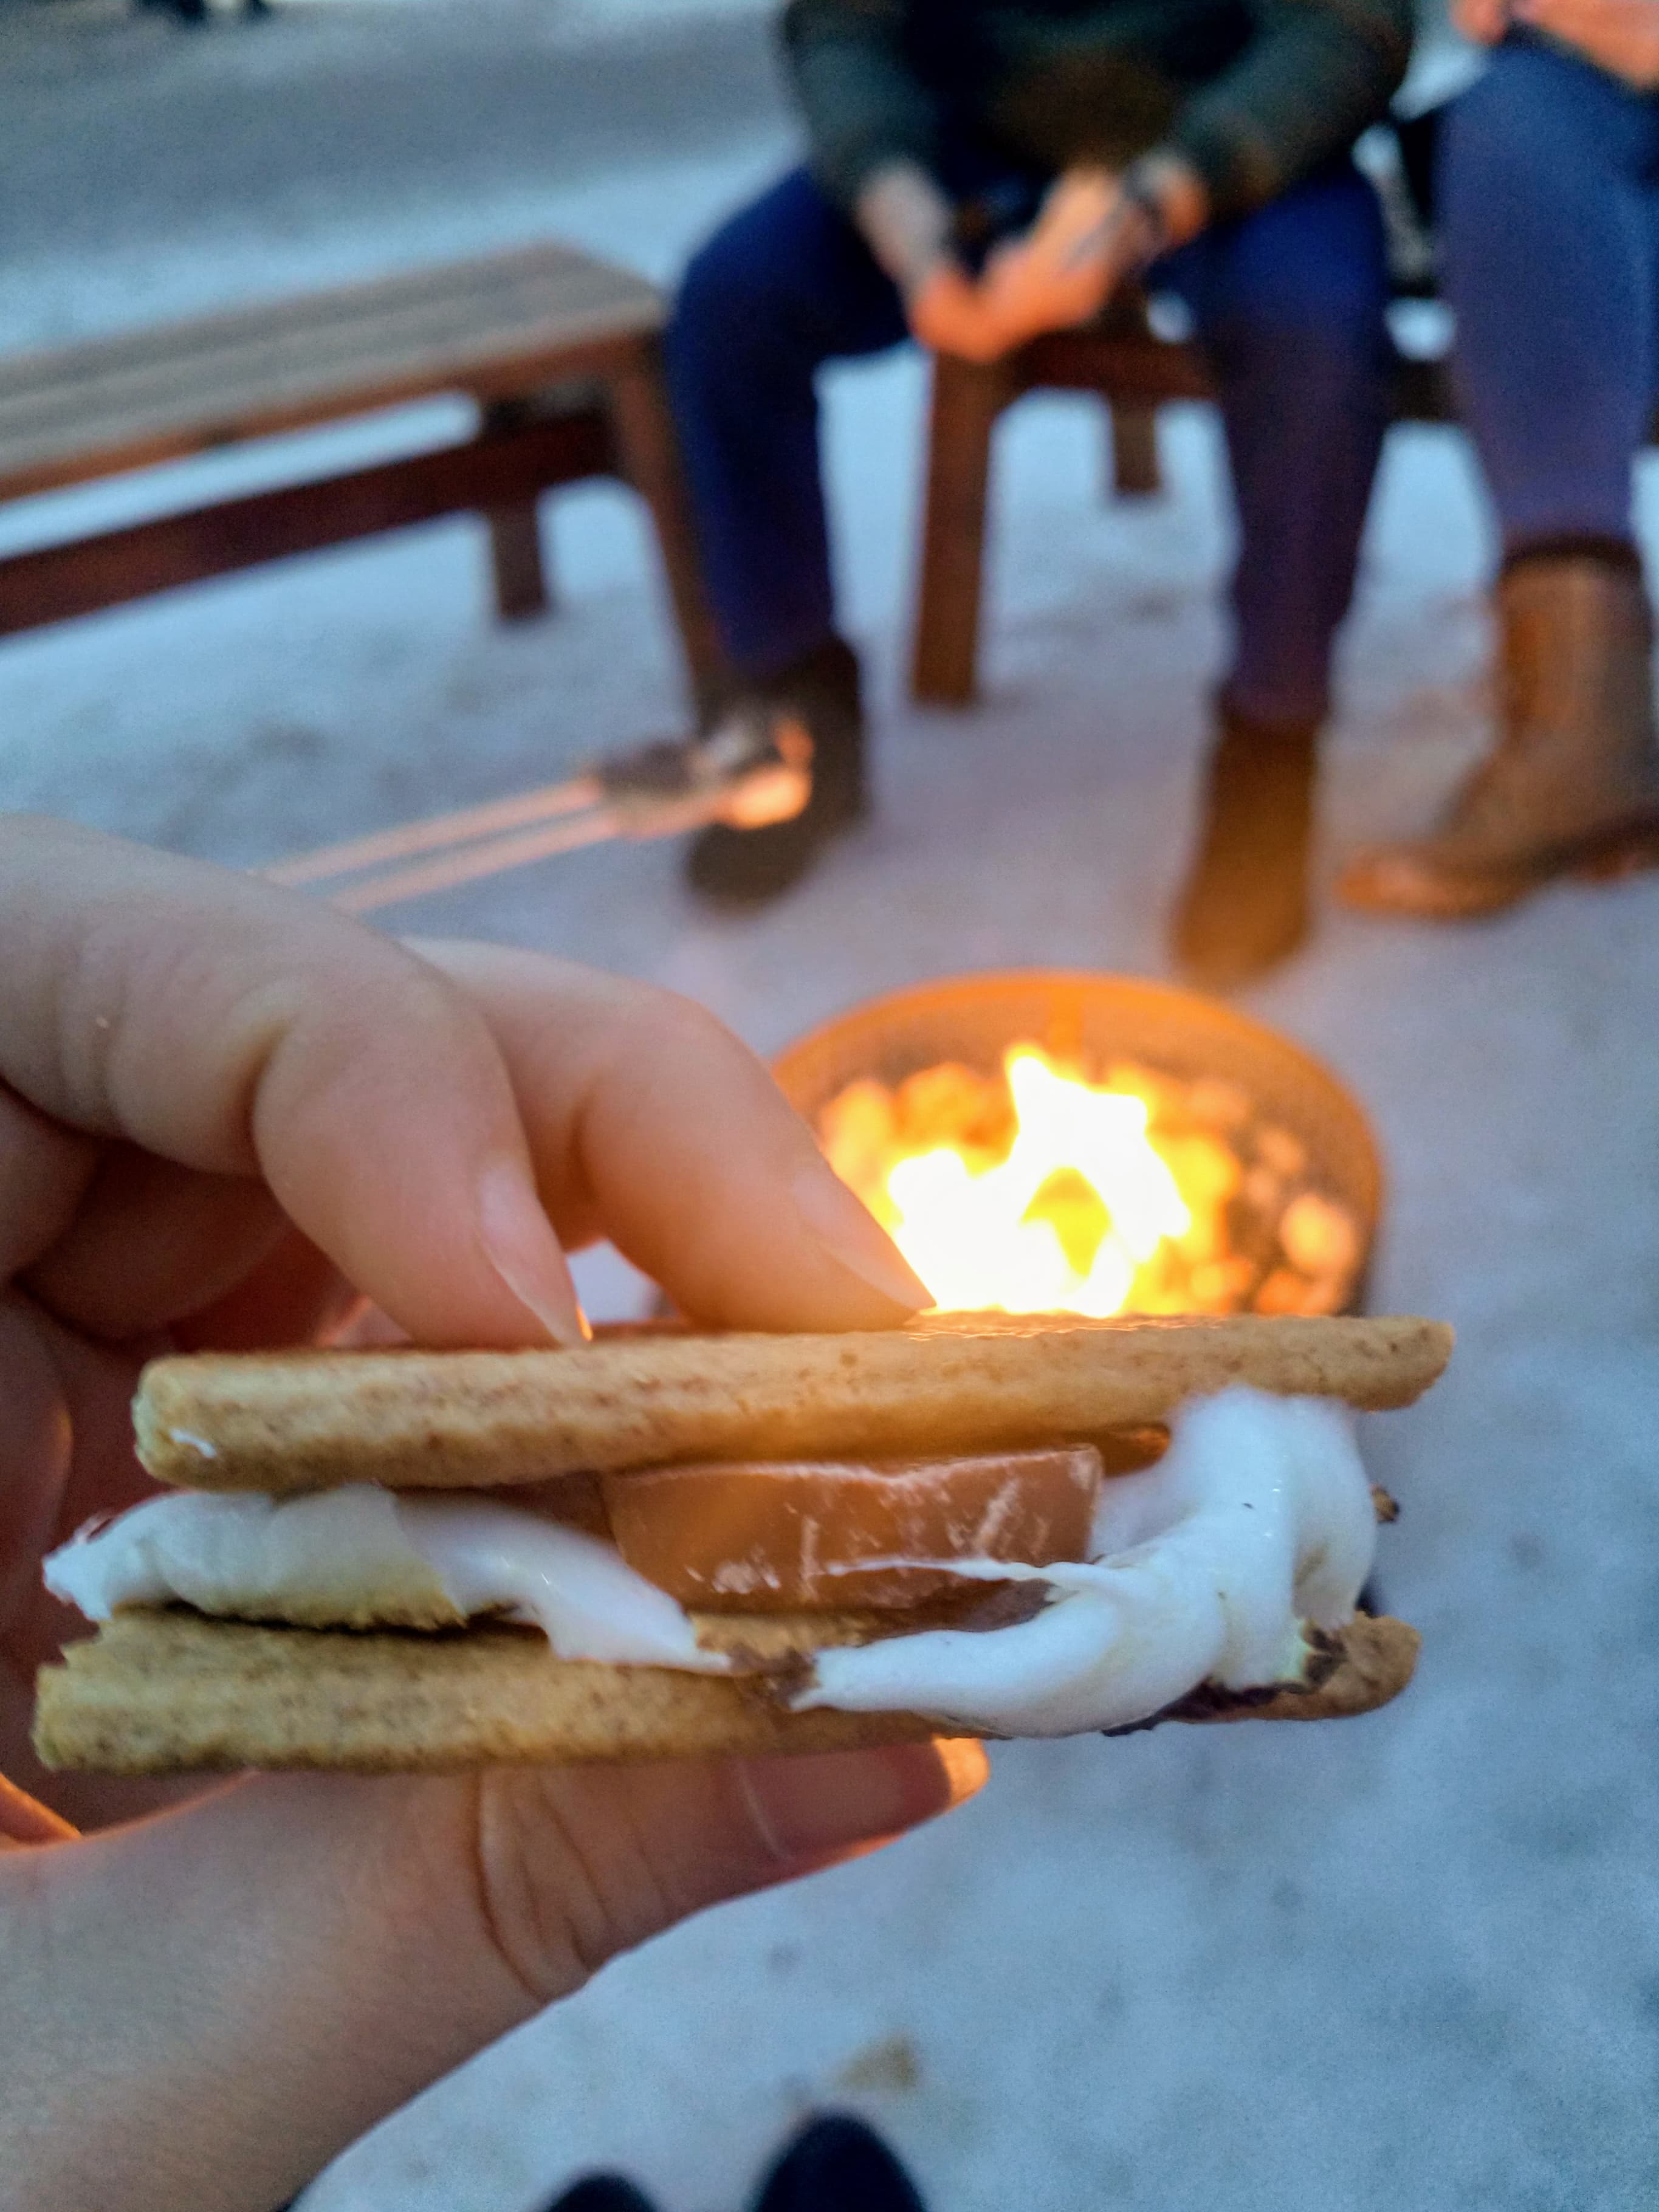 We ate A LOT of S'mores this week!